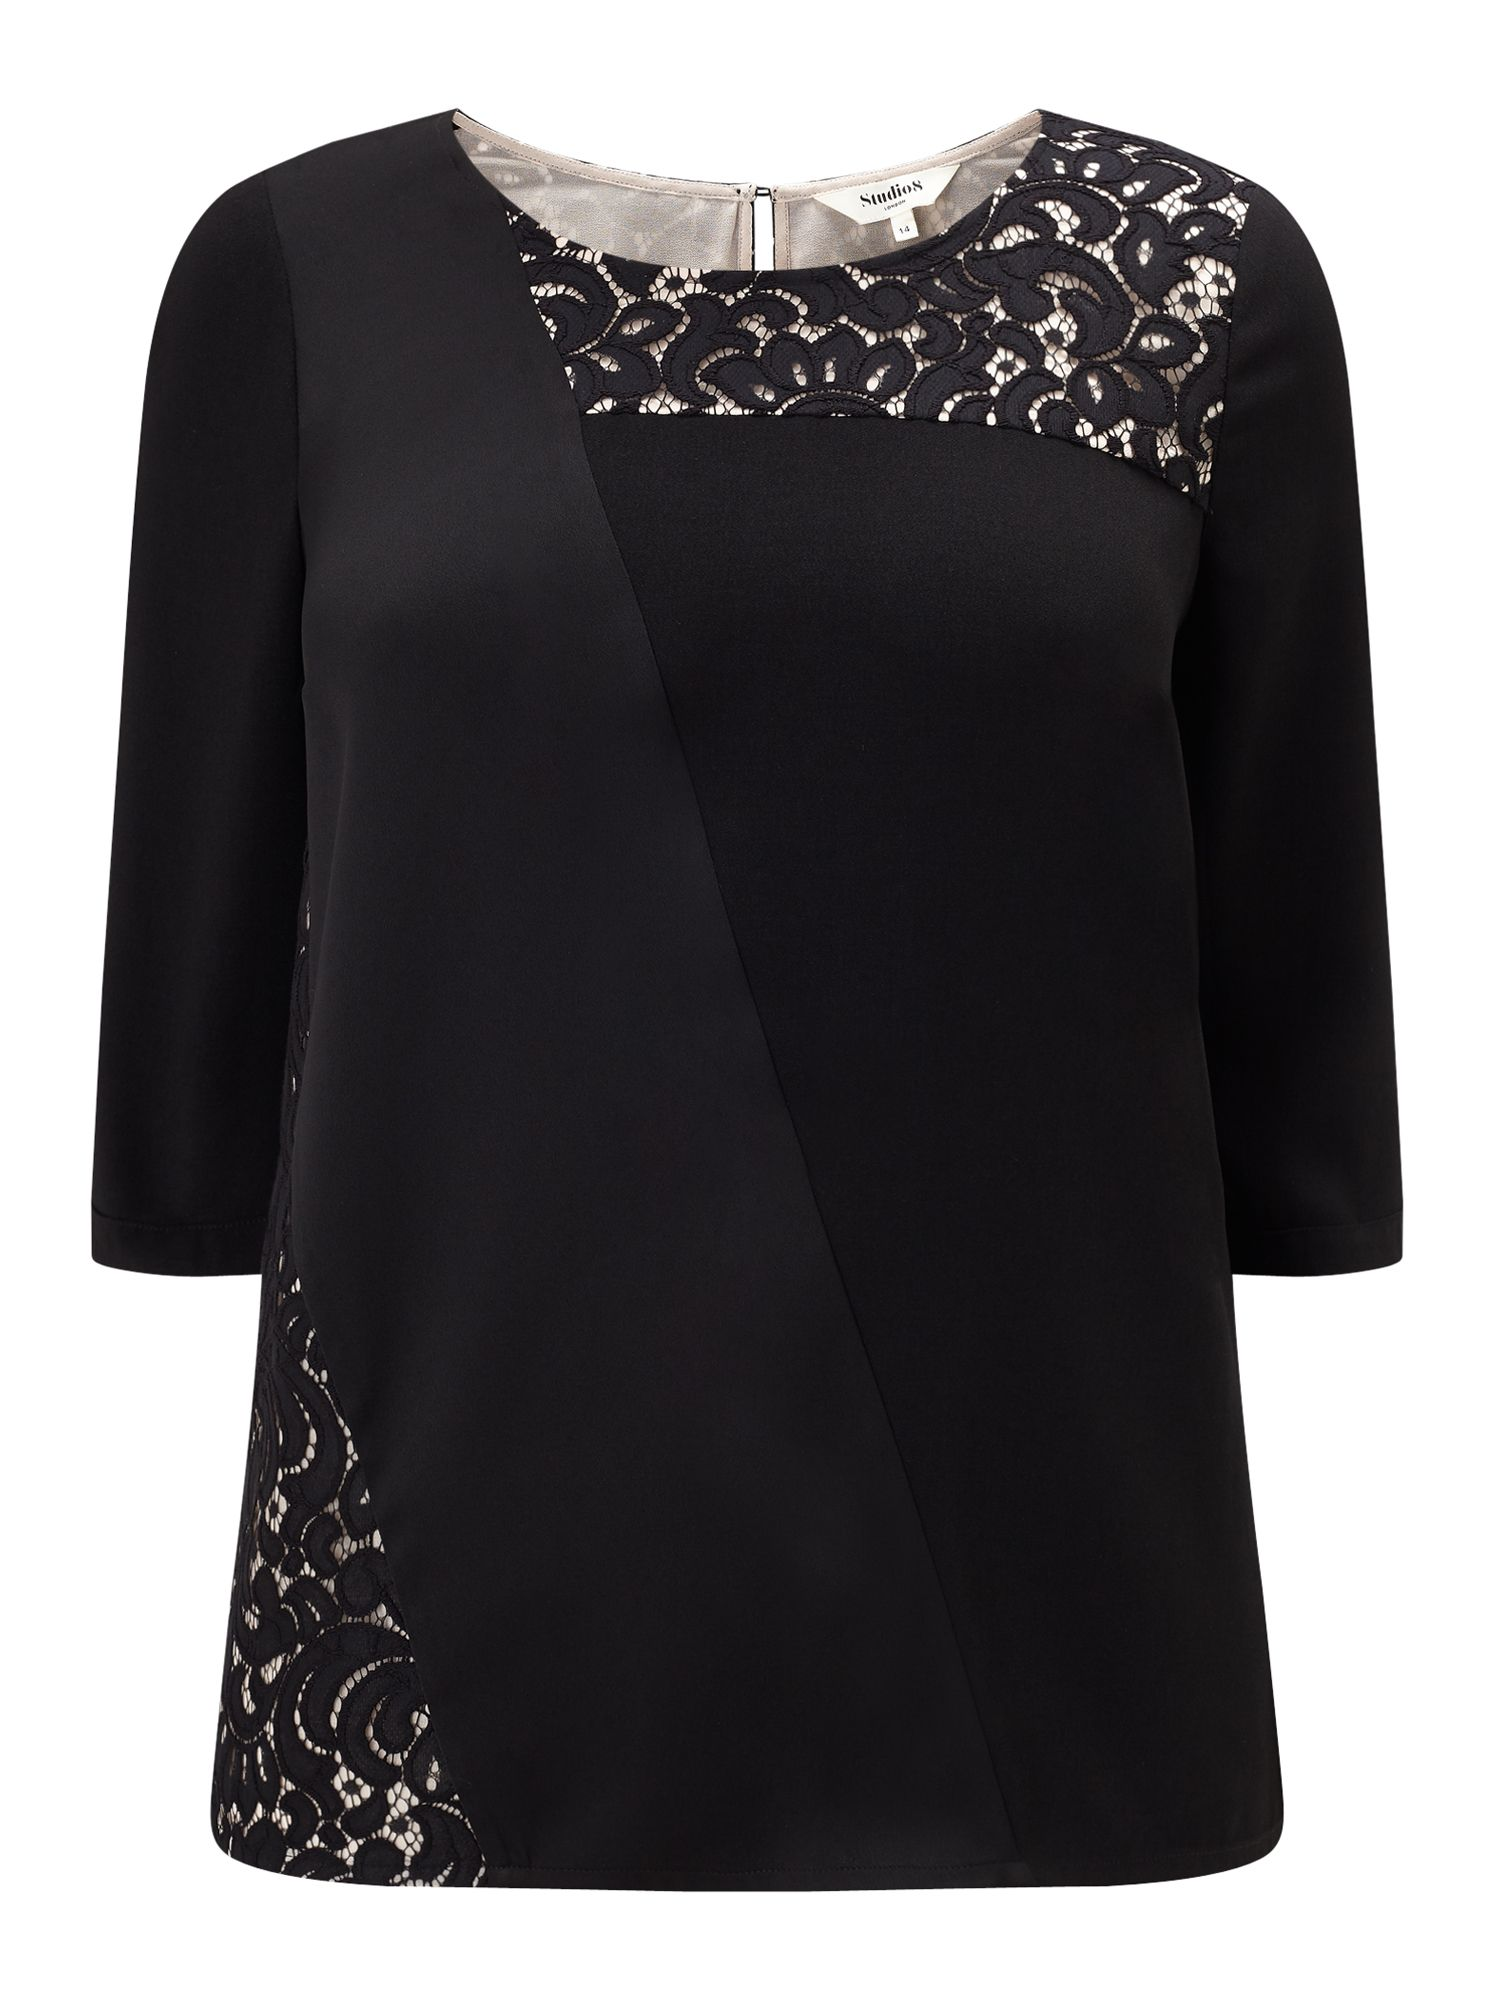 Studio 8 Safire Top, Black